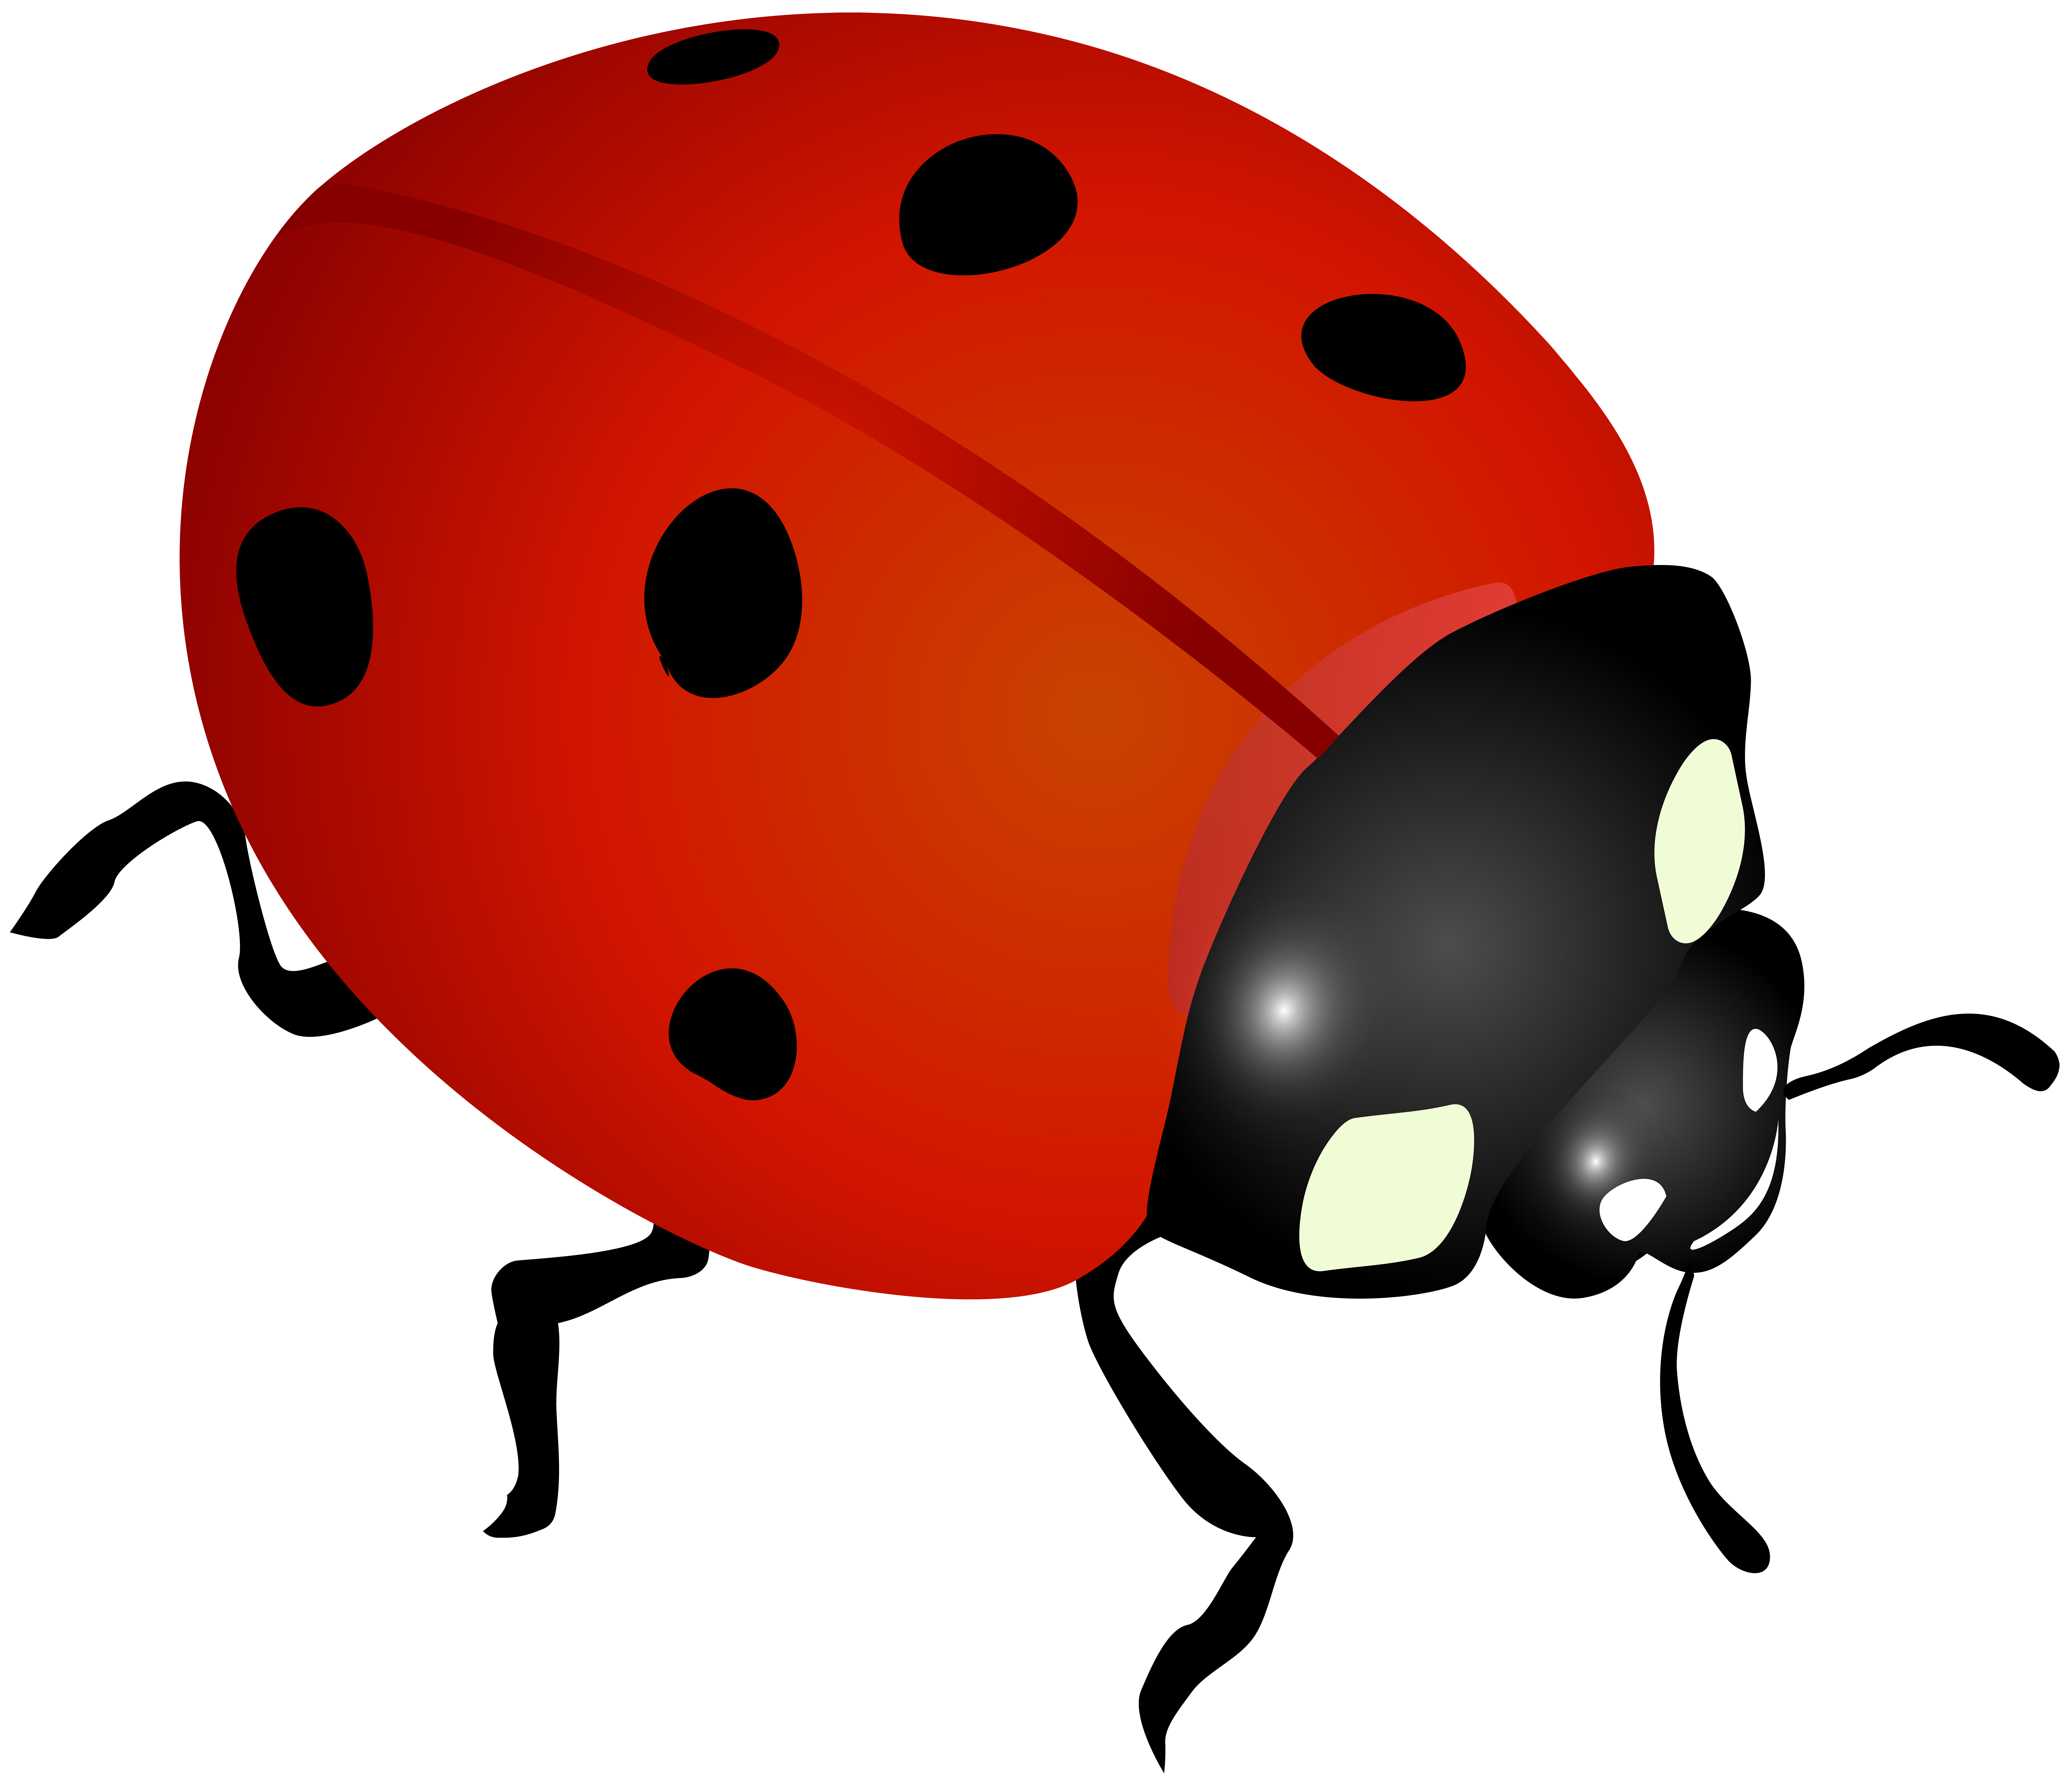 Ladybug clipart. Clip art image gallery